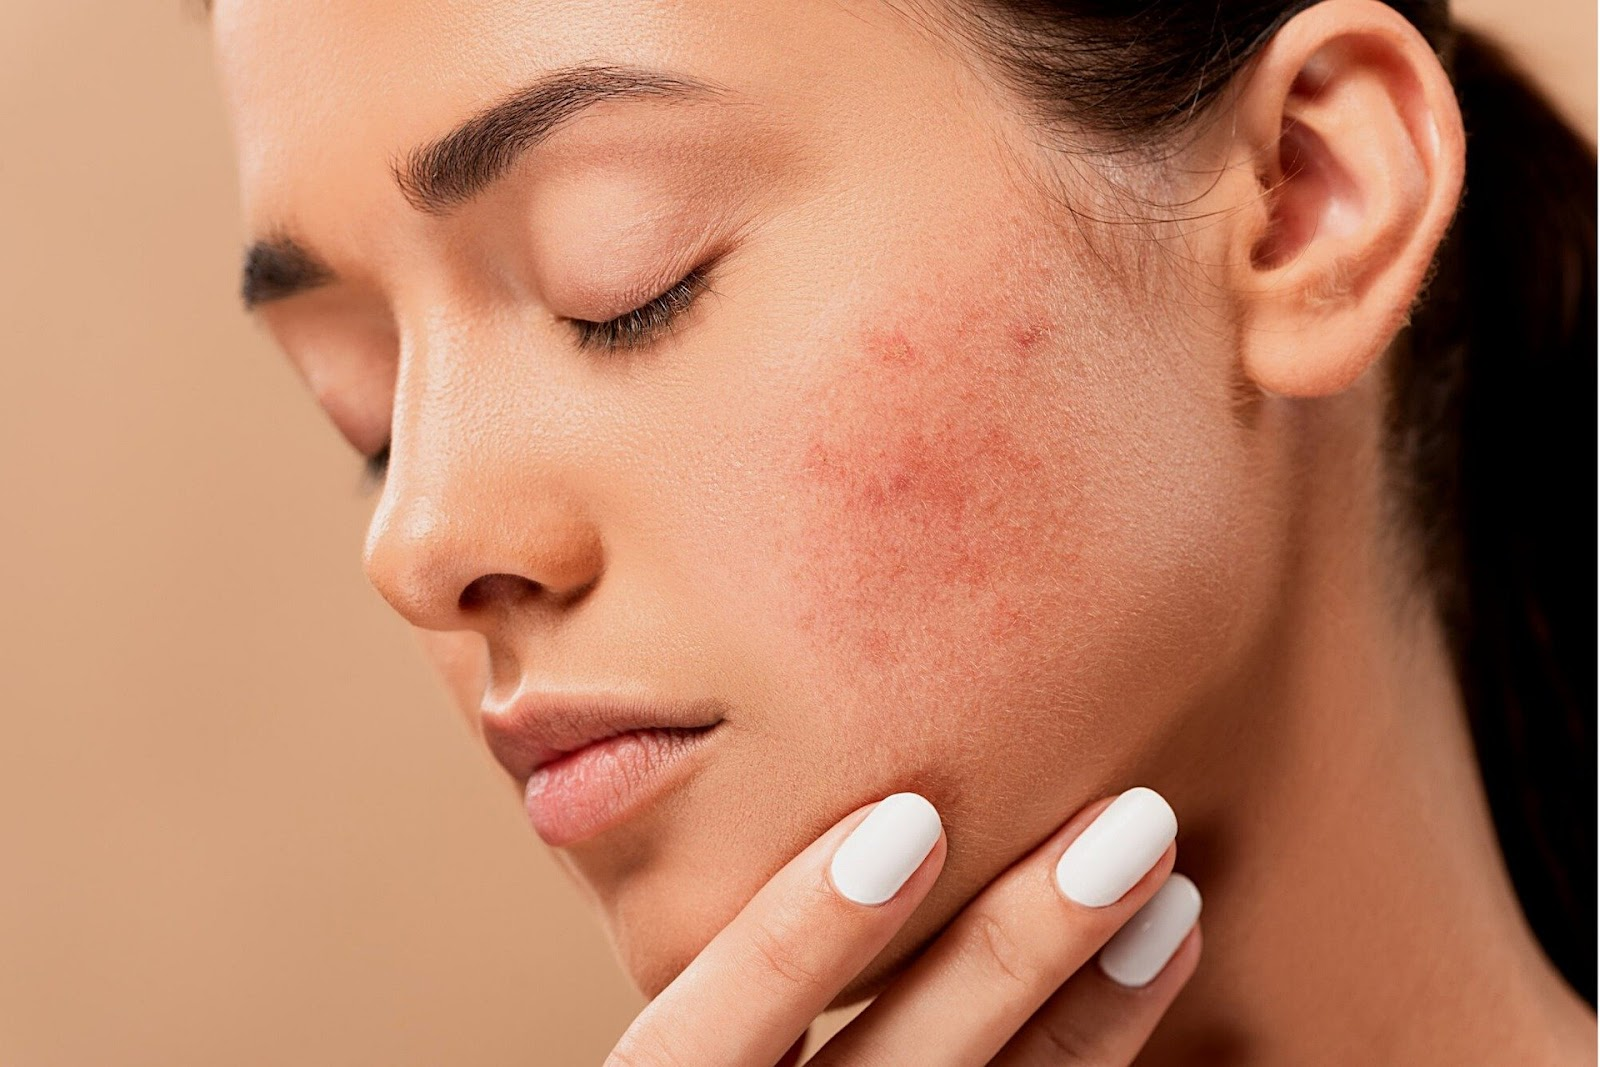 Copper Peptide Serum for Acne Scars: A Detailed Summary 3